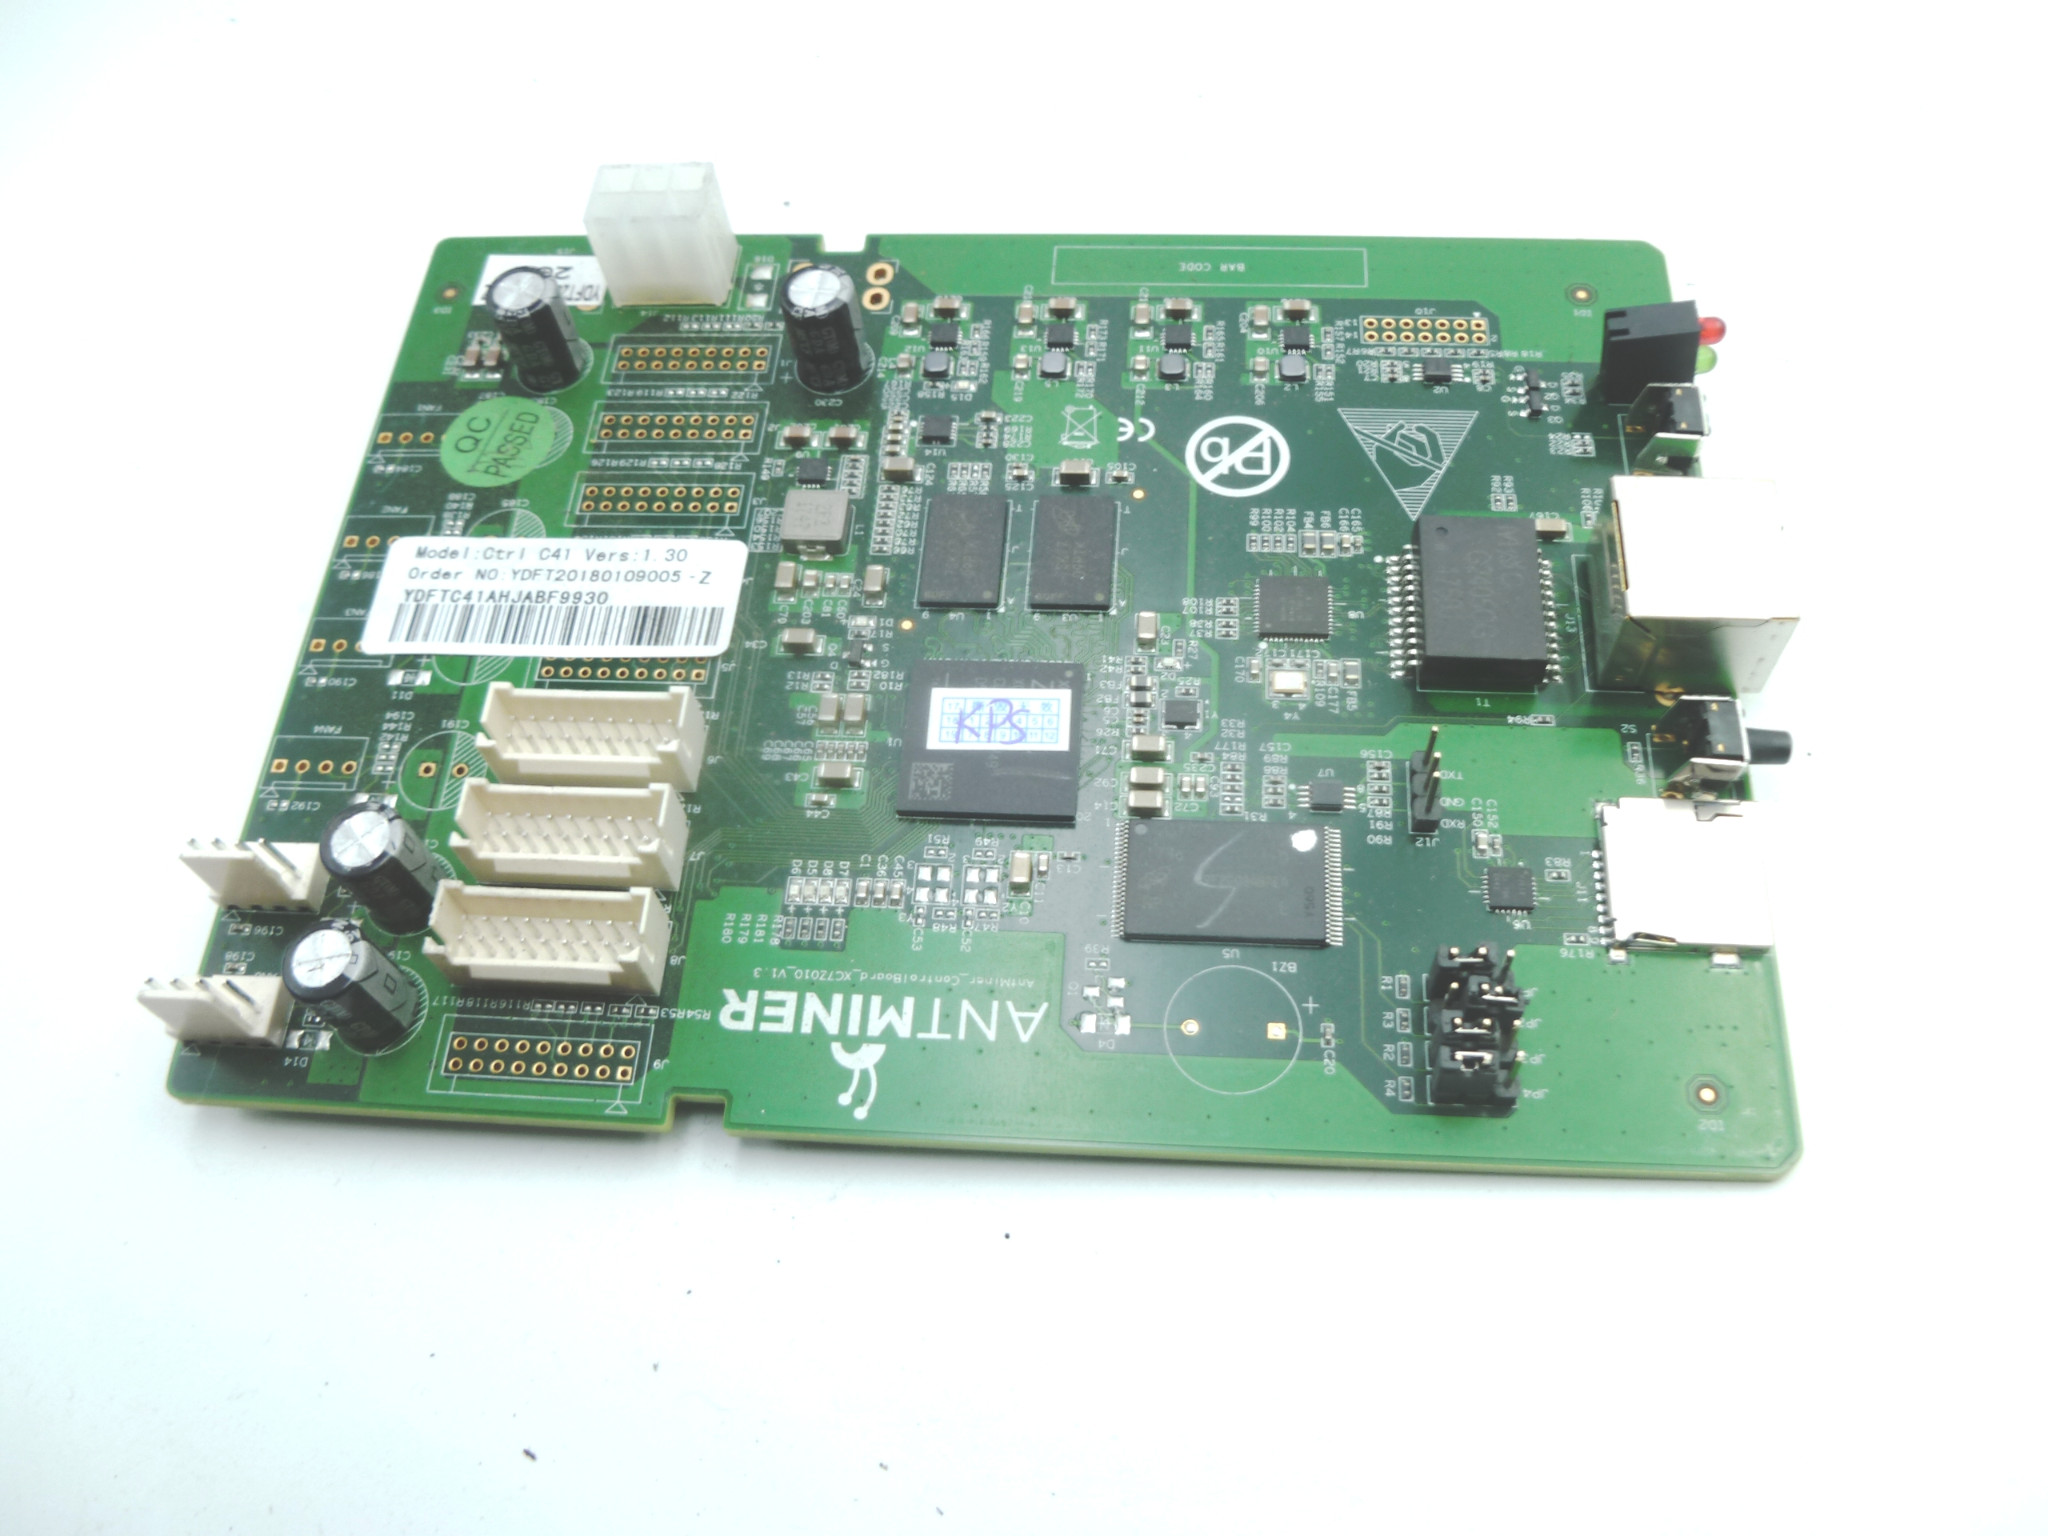 Details about GOOD USED Bitmain Antminer S9 S9I S9J R4 T9 Control Board  NoVirus 3 mth warranty